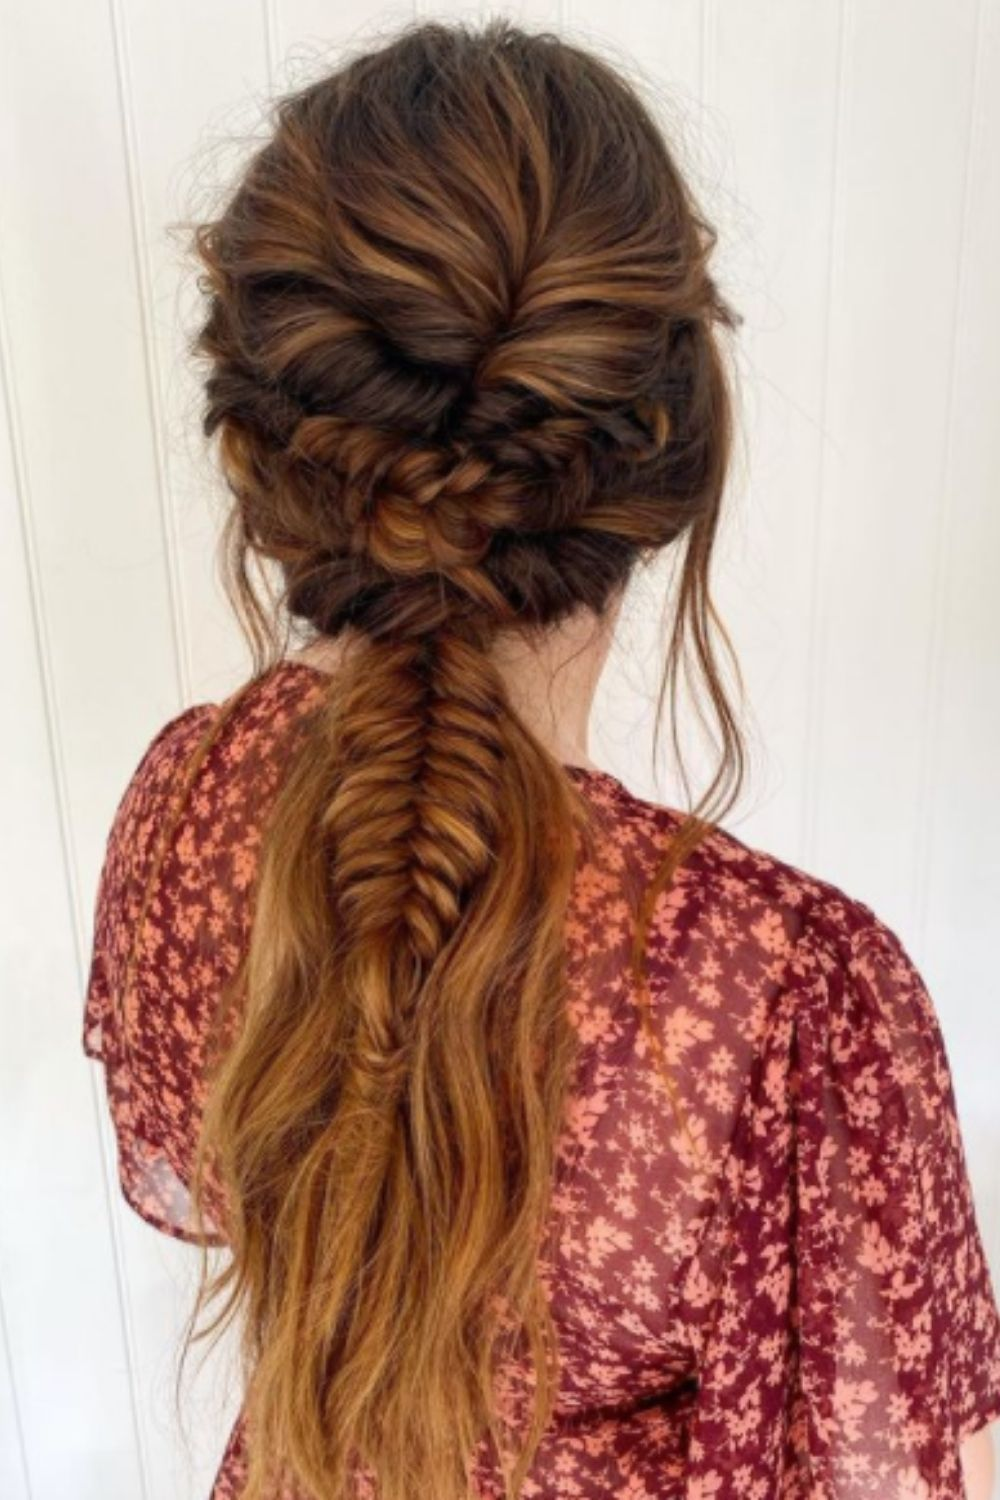 Ponytail for long curly hair